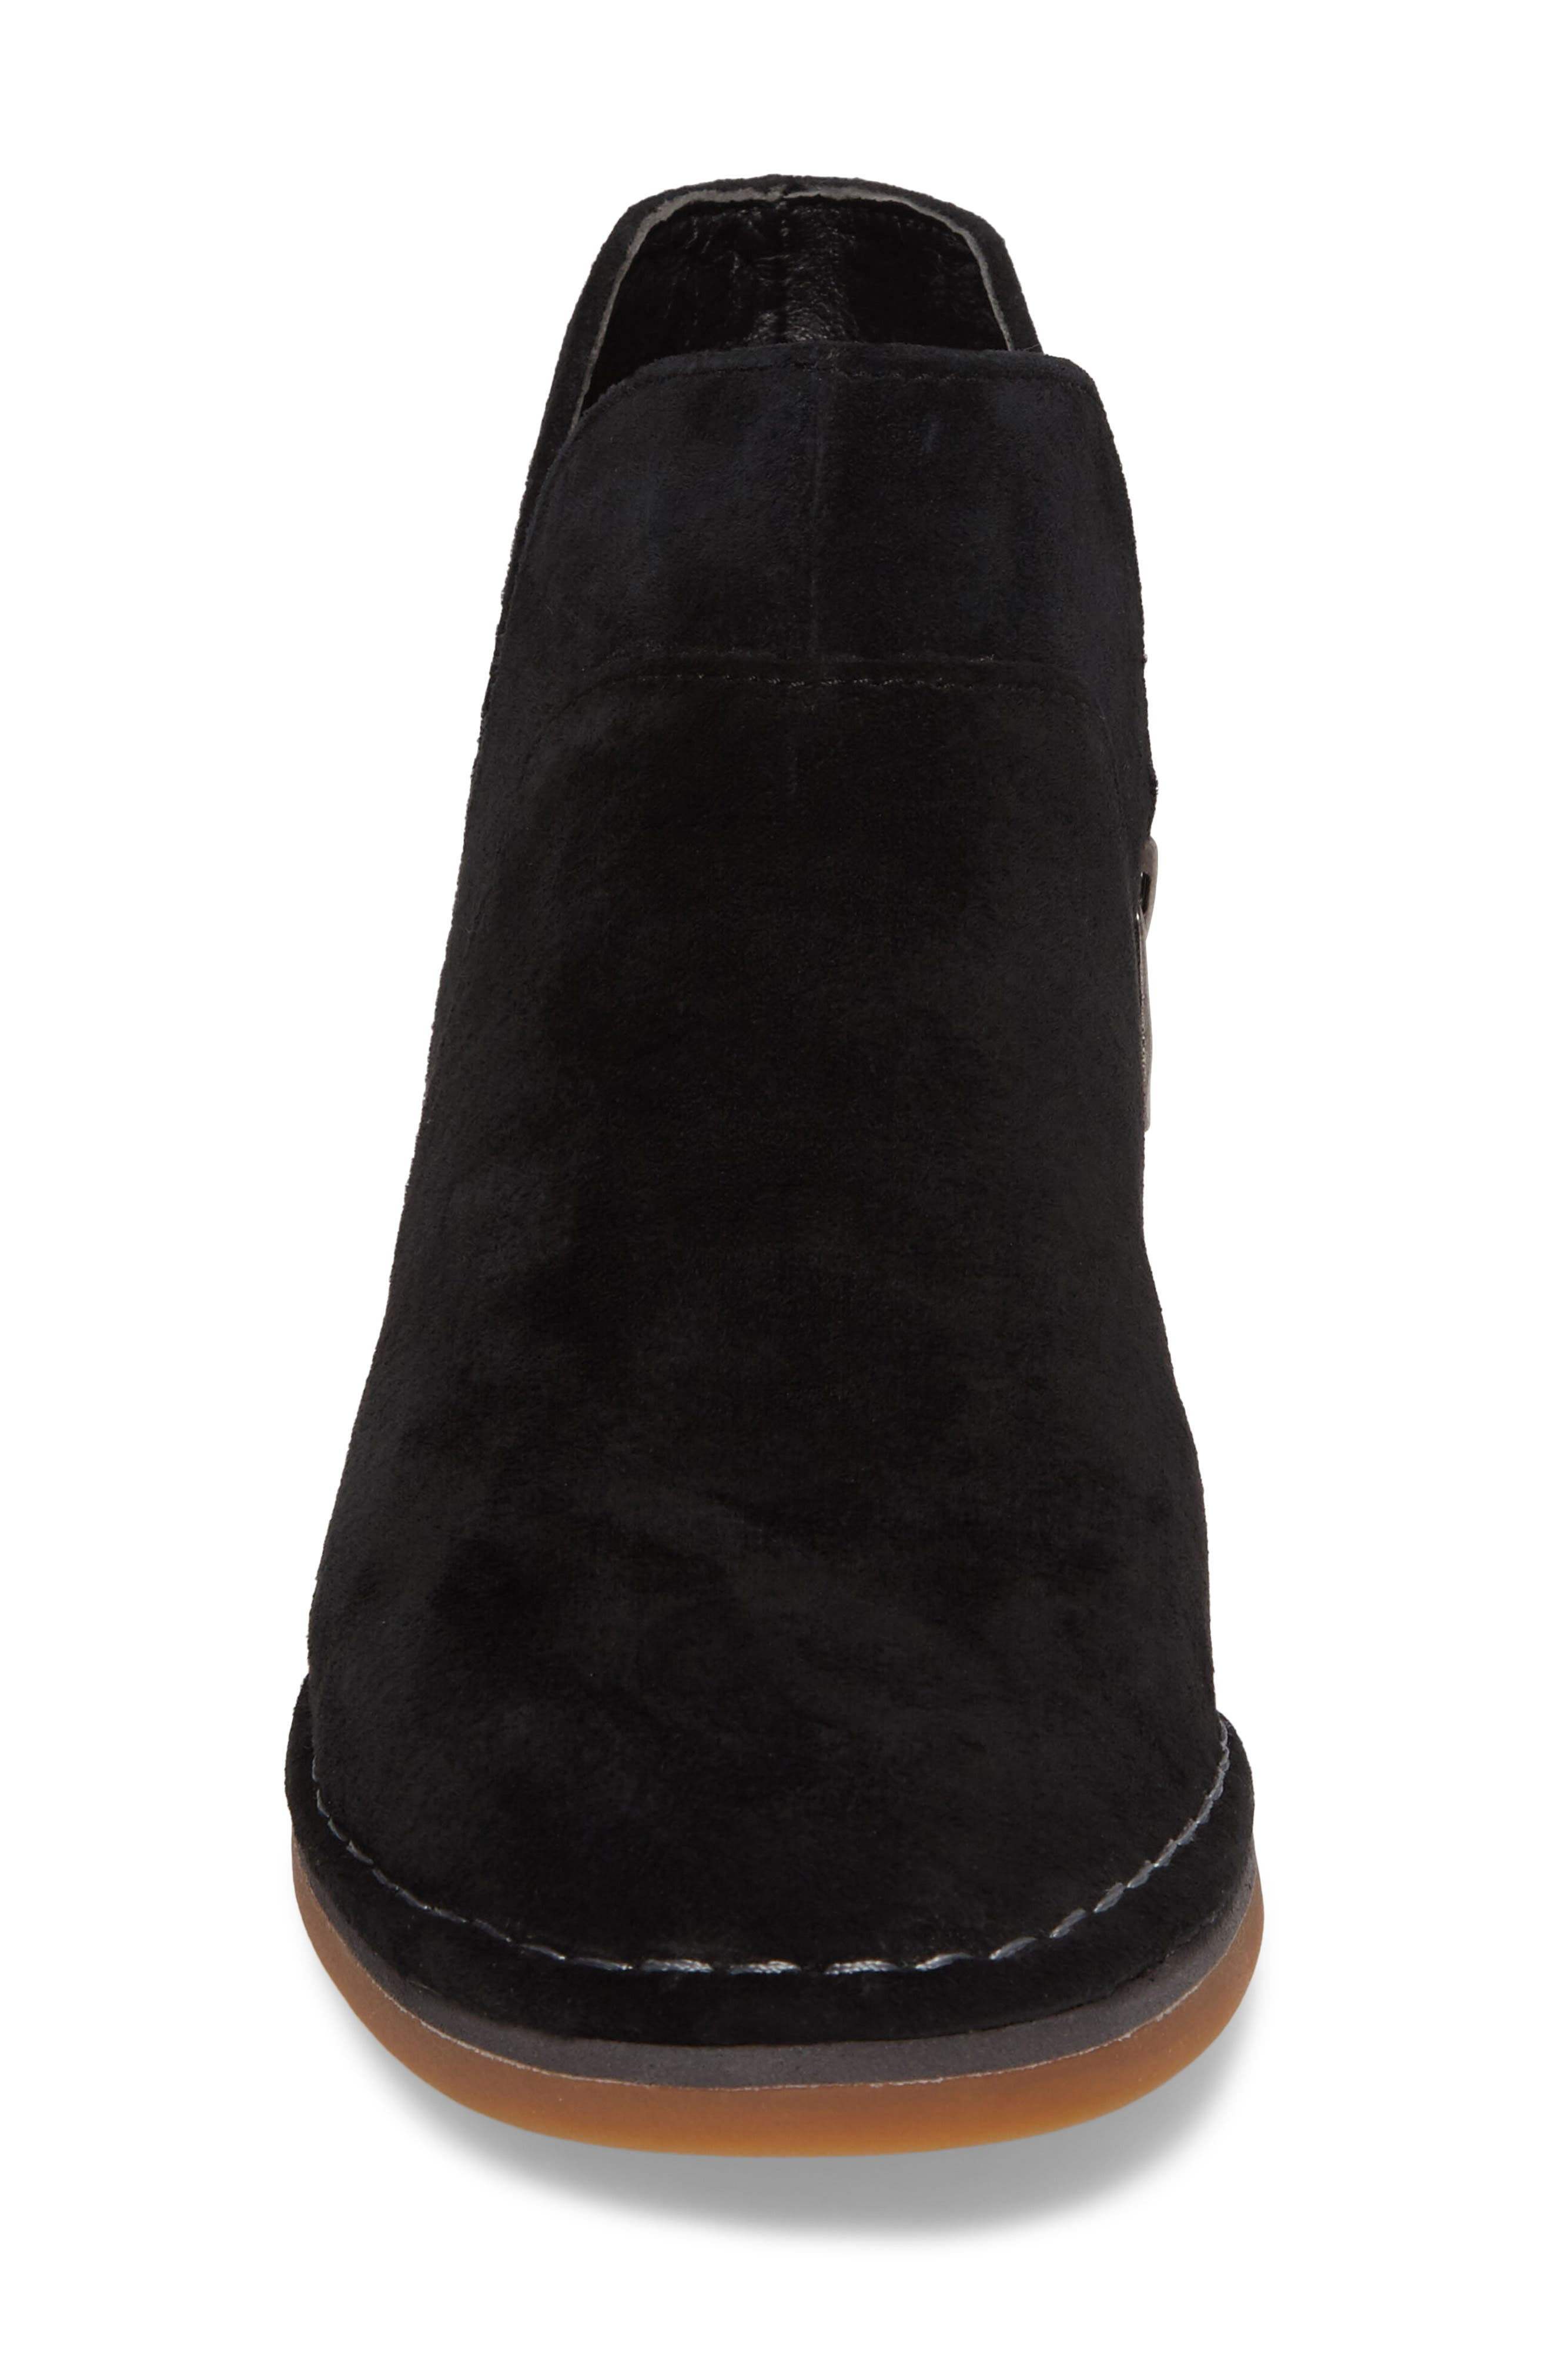 Claudia Catelyn Bootie,                             Alternate thumbnail 10, color,